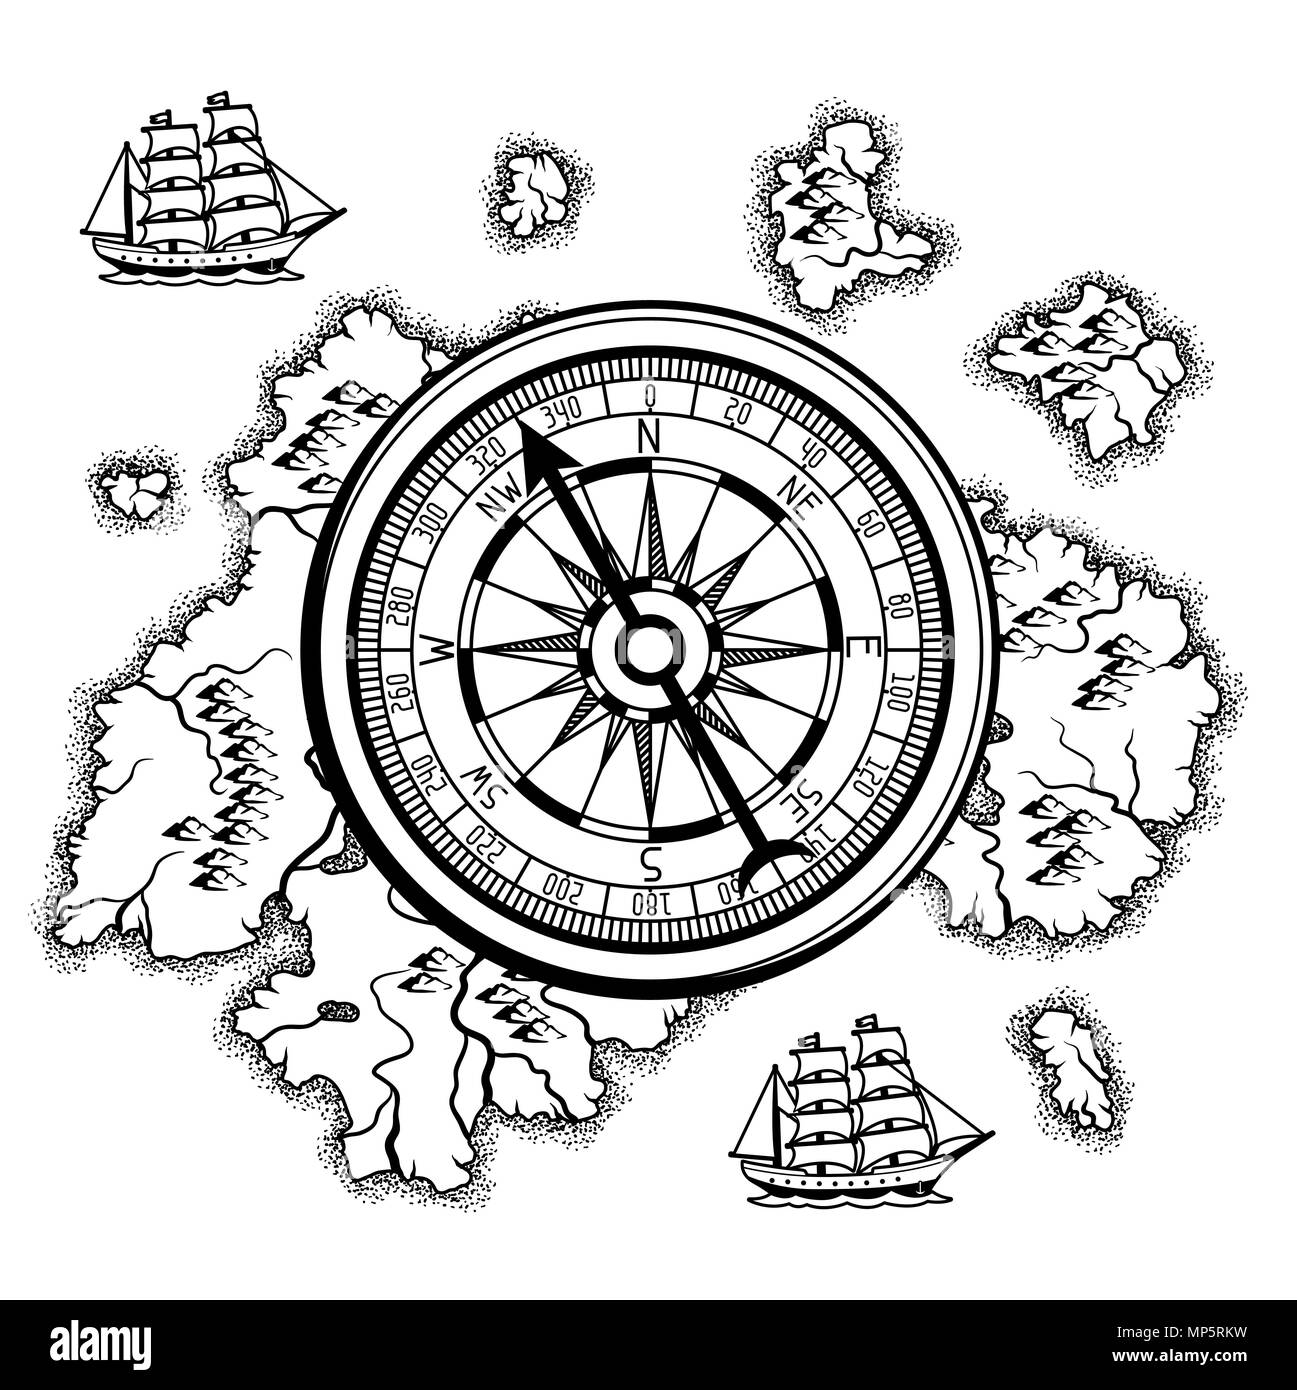 Background with old nautical map. - Stock Image